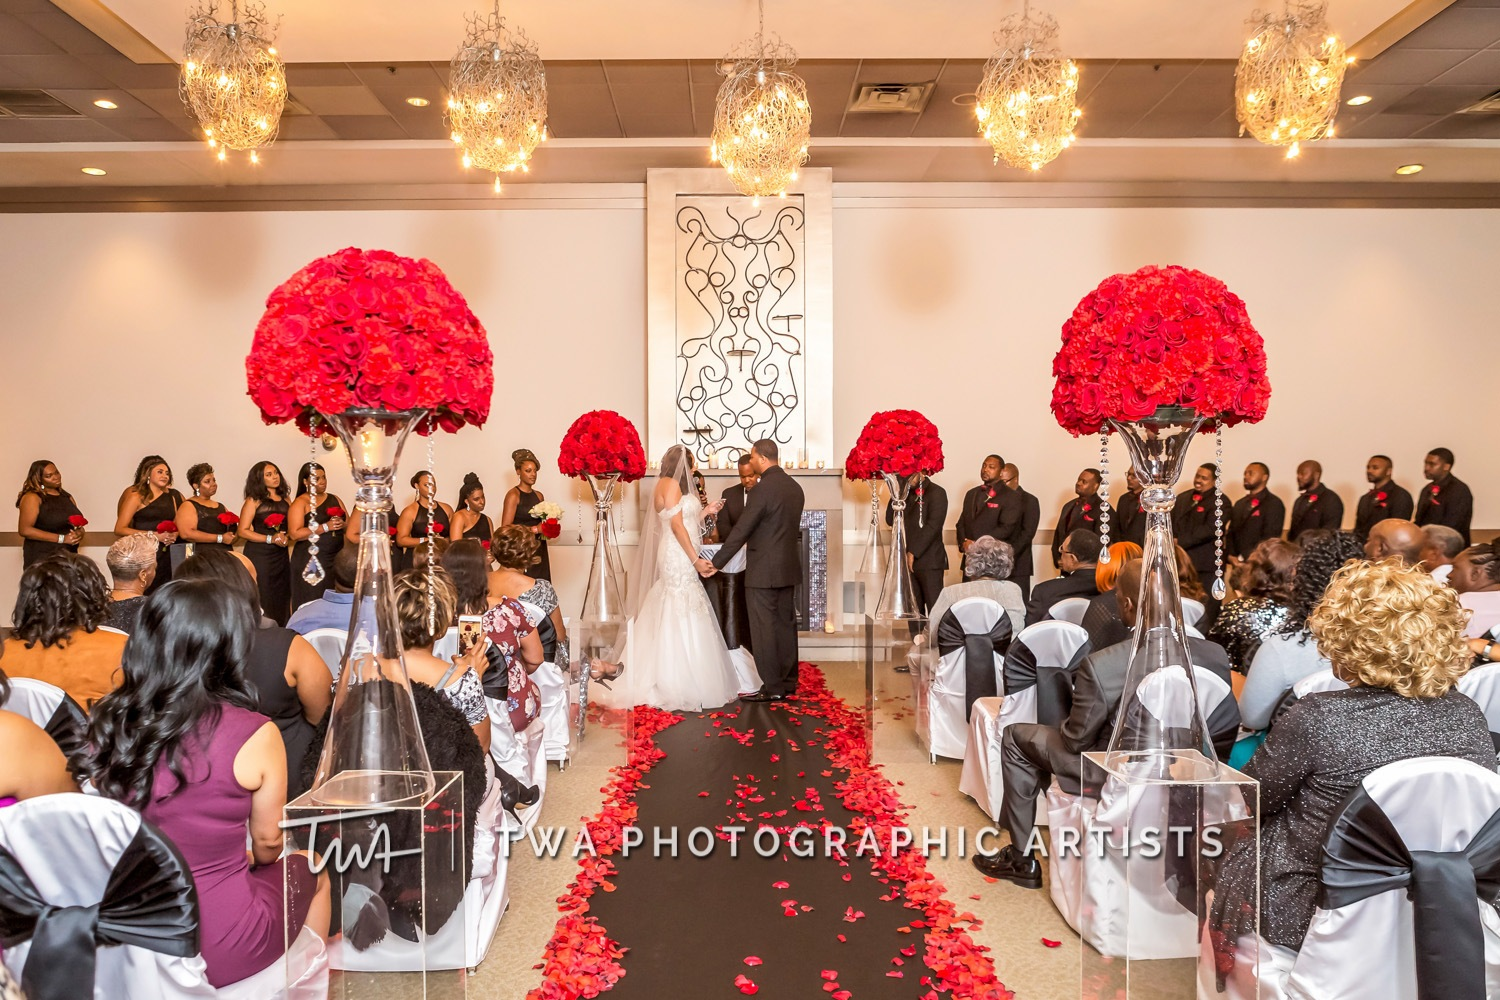 Chicago-Wedding-Photographer-TWA-Photographic-Artists-Belvedere-Banquets_Chambers_Robinson_MiC-0310